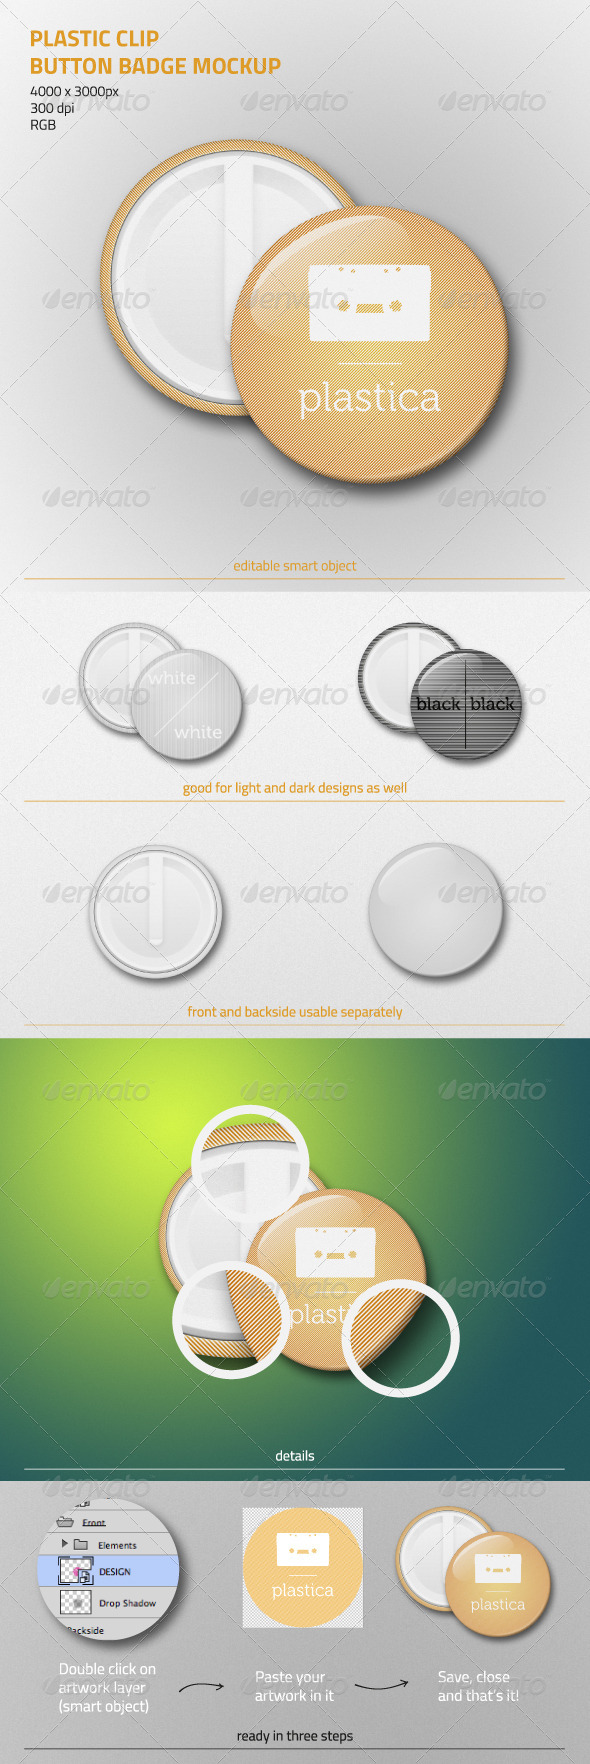 Plastic Clip Button Badge Mockup - Miscellaneous Product Mock-Ups